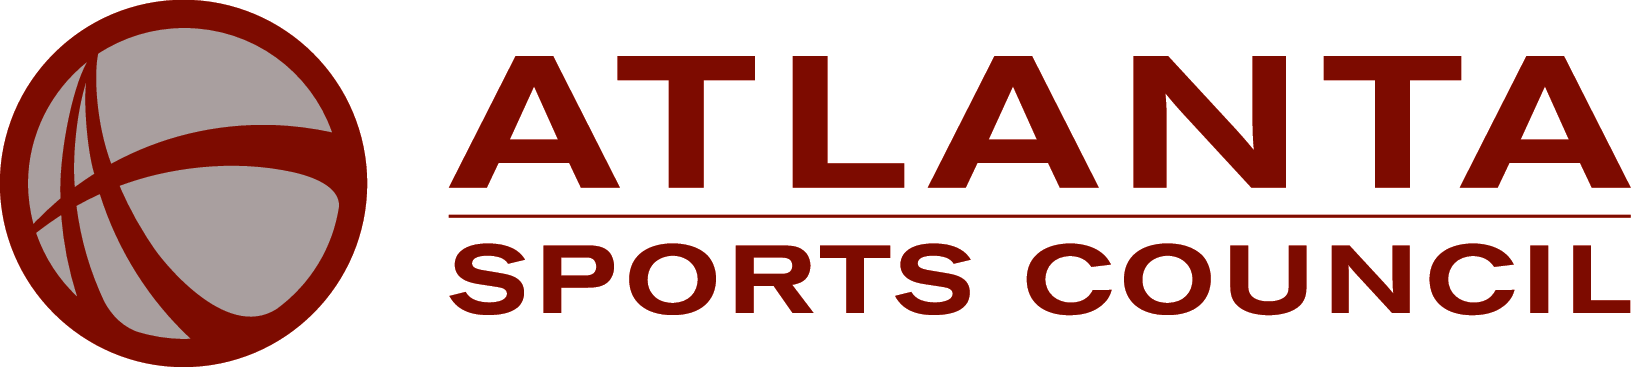 Atlanta Sports Council Logo